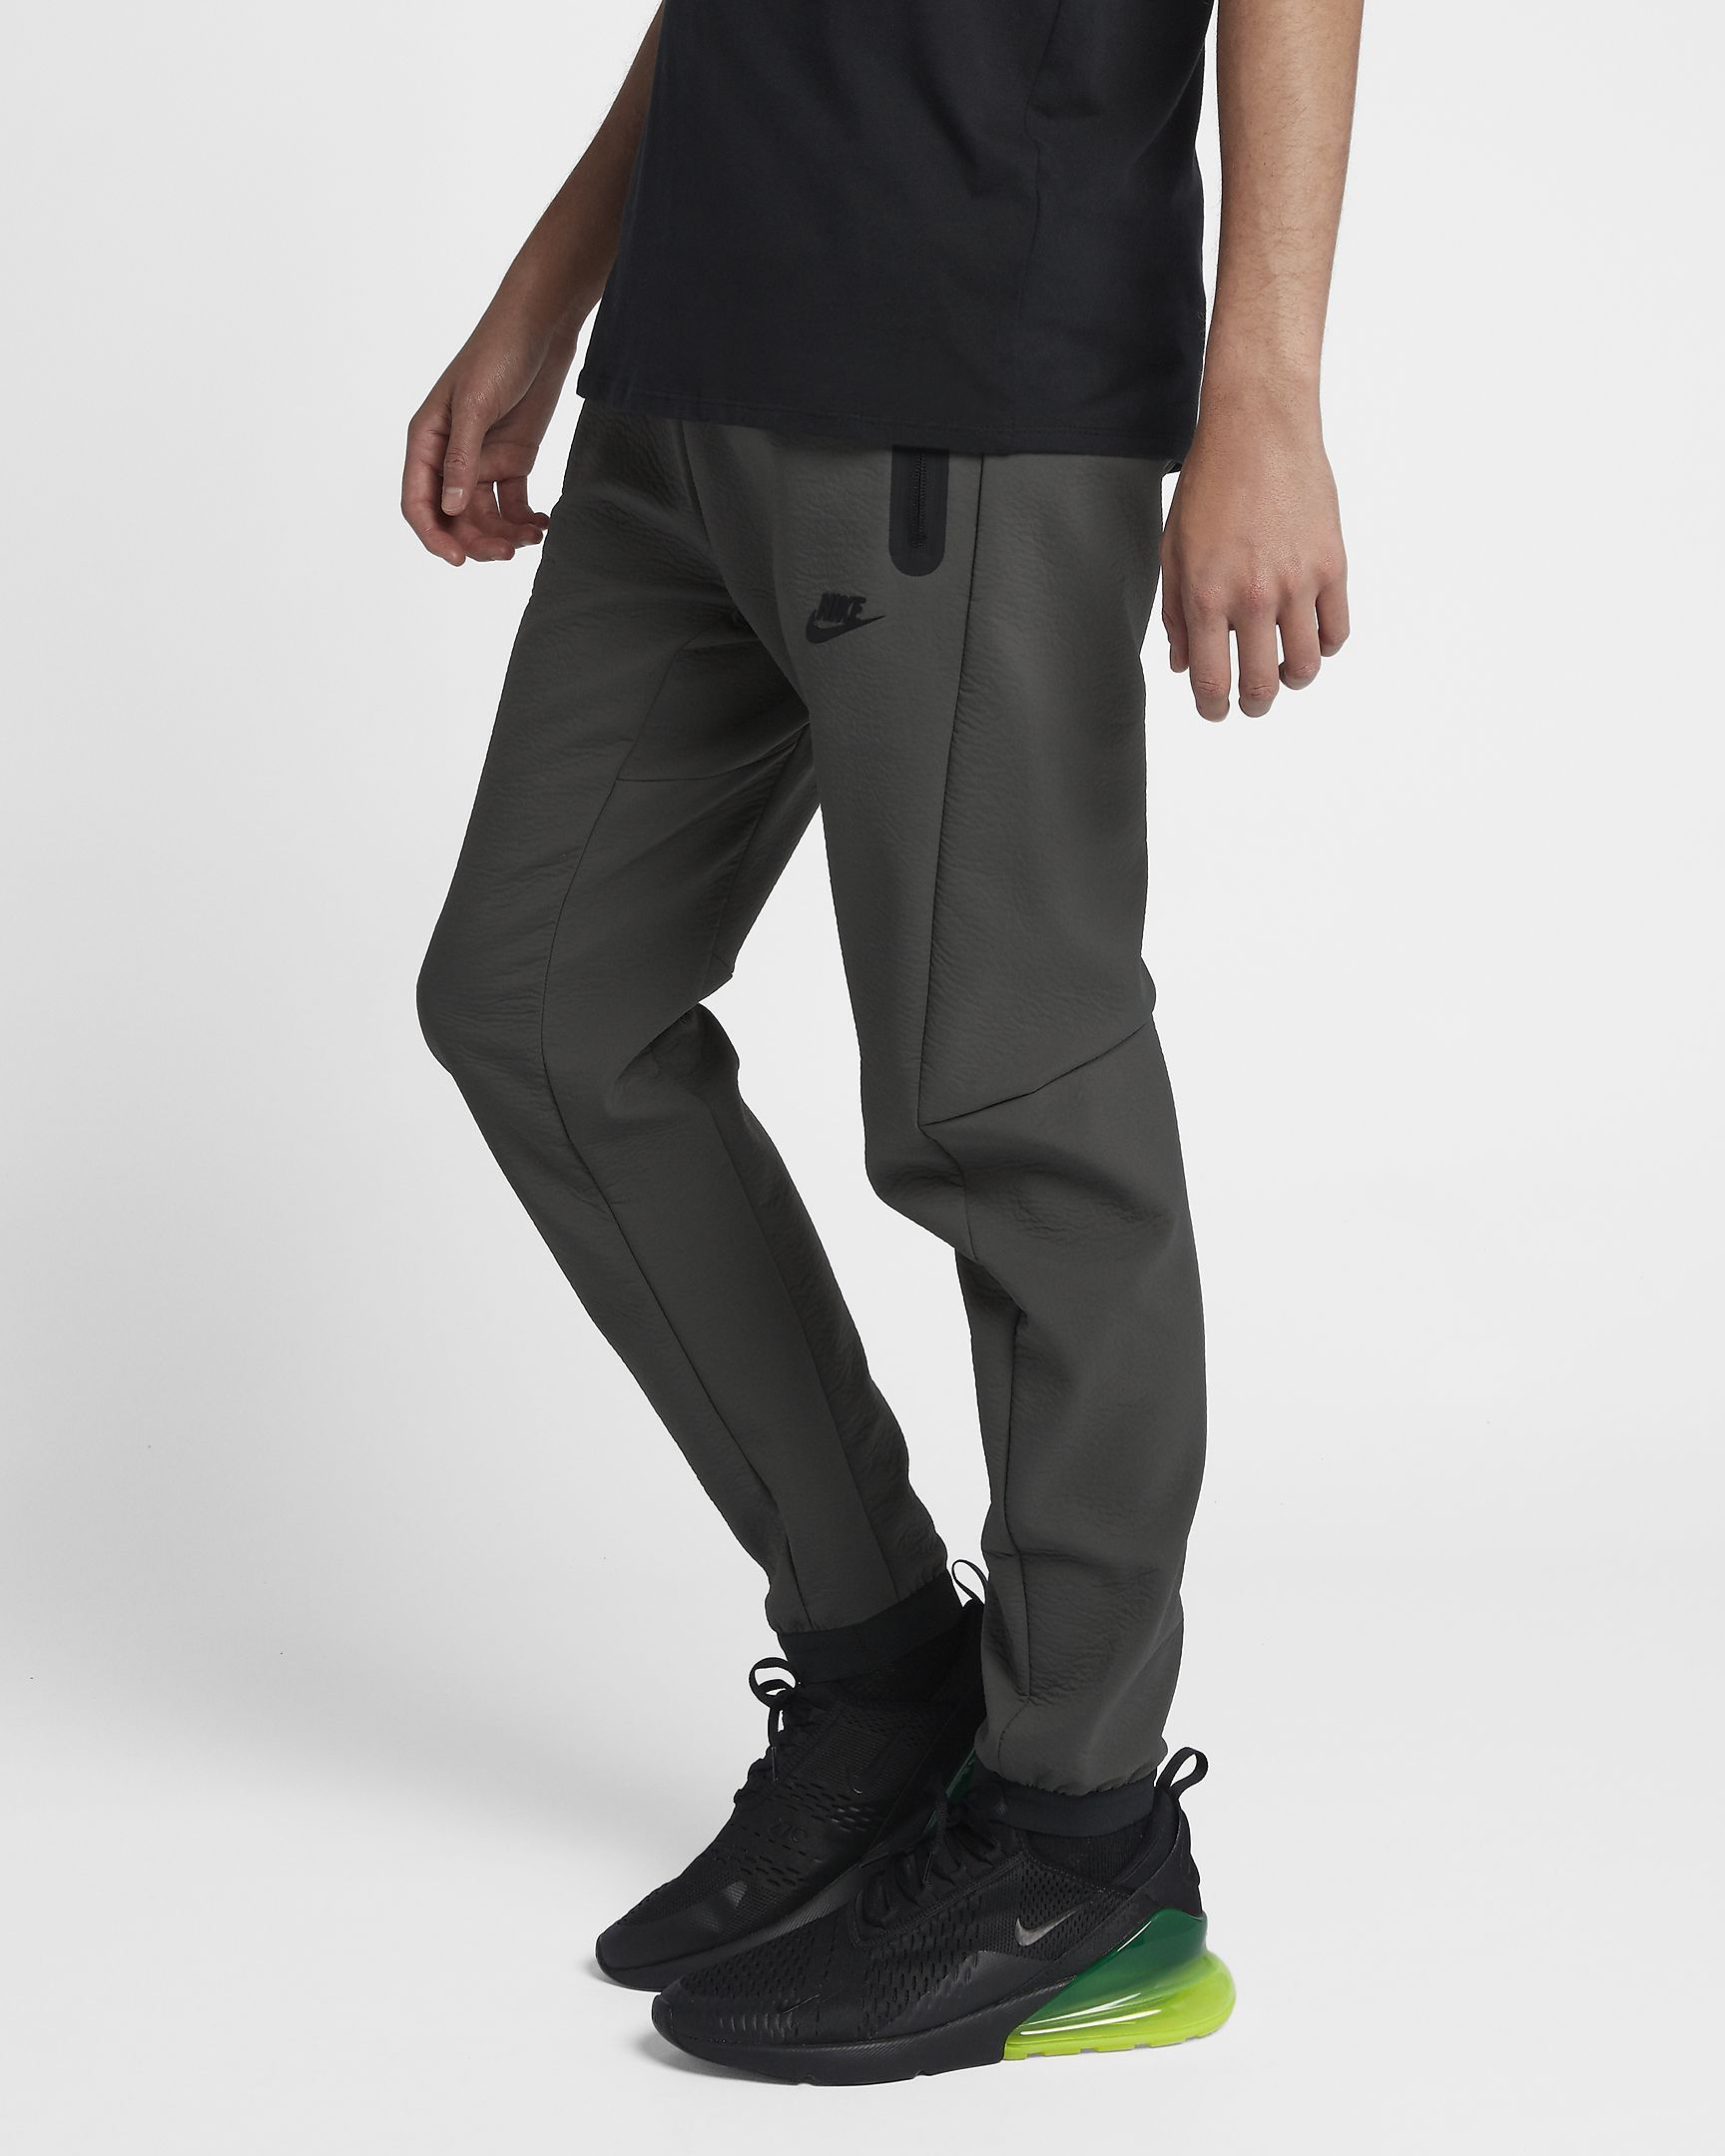 Nike Sportswear Tech Pack Men's Woven Pants Tracksuit